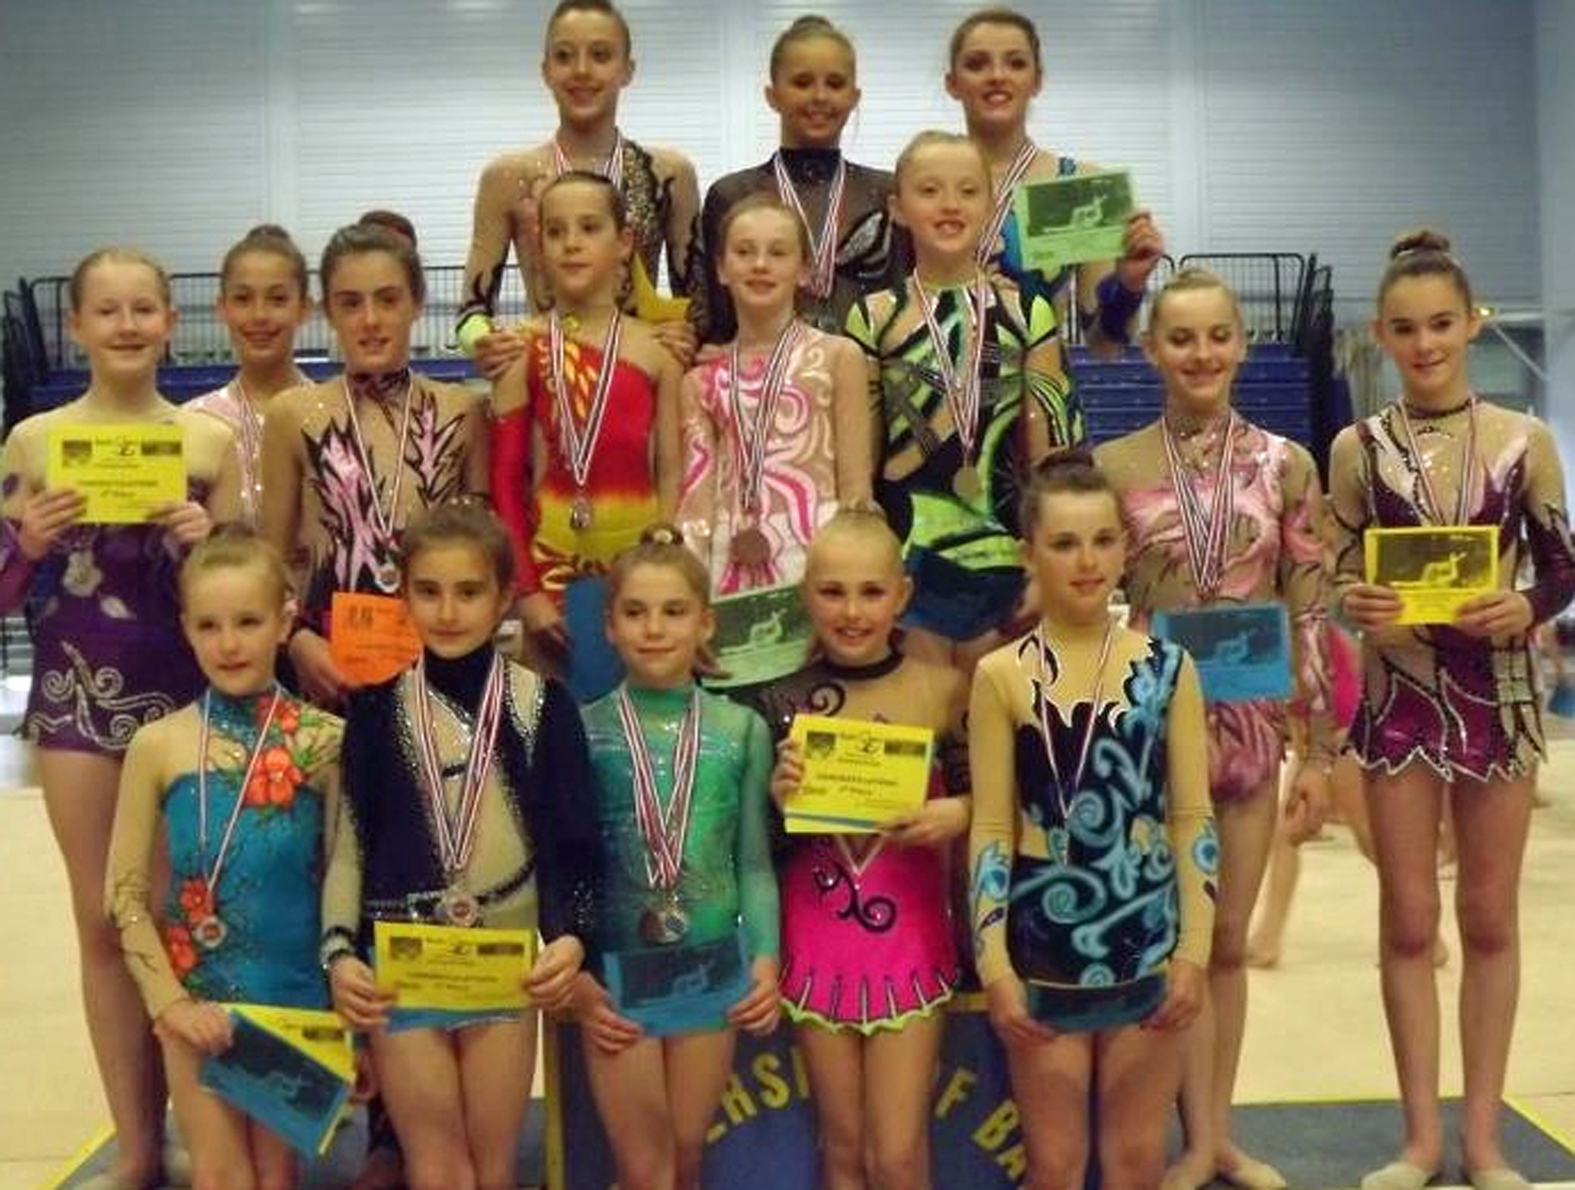 Llanelli gymnasts pick up large medal haul in Bath